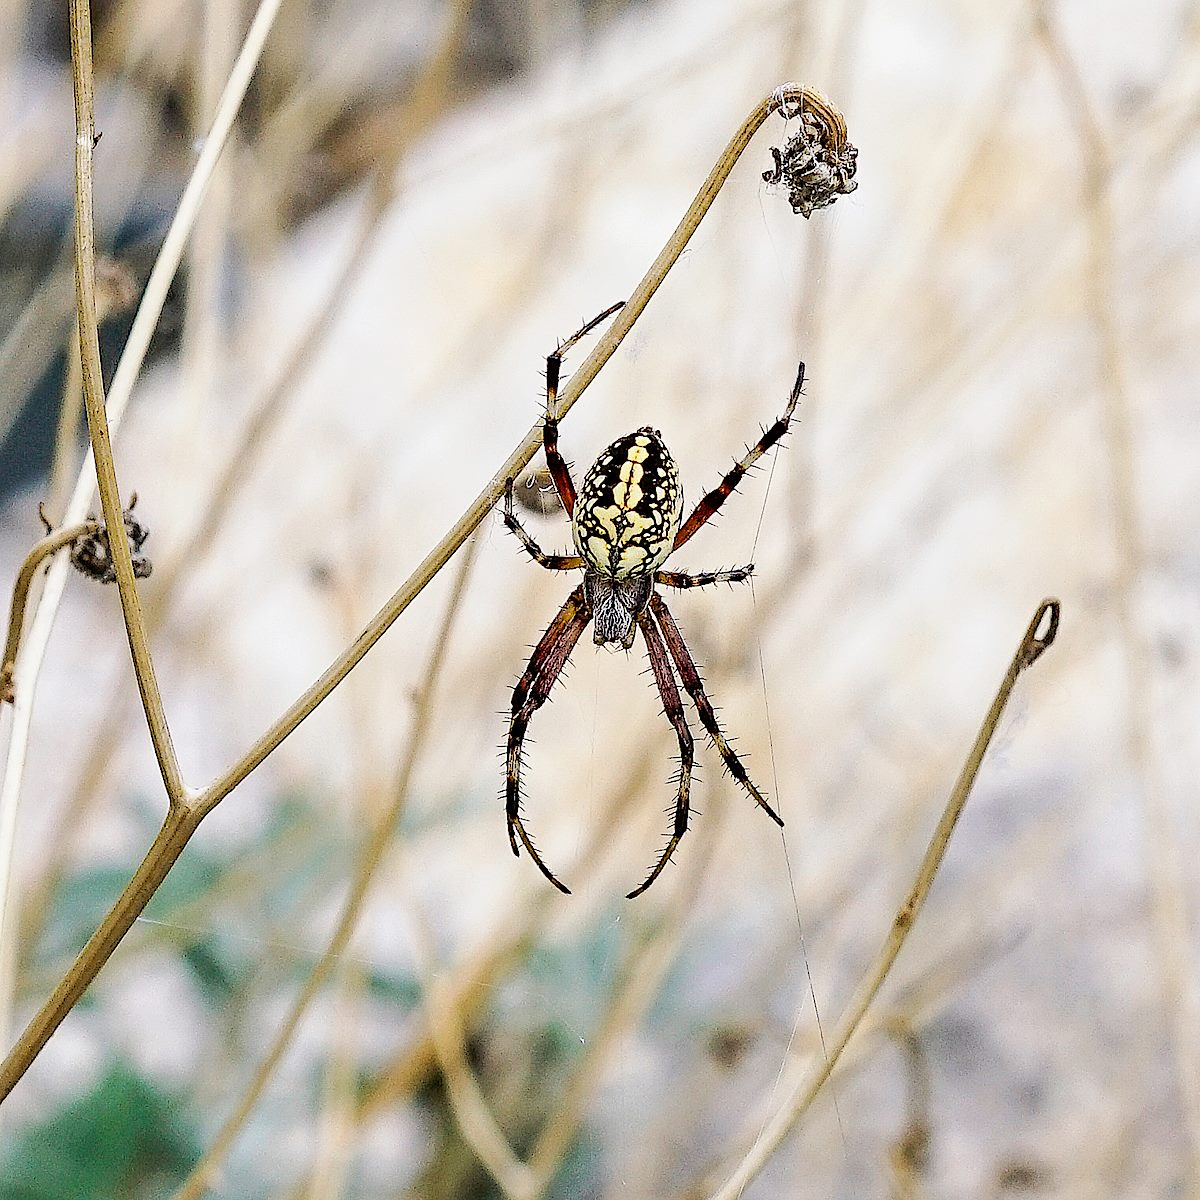 A Western Spotted Orbweaver at the Soldier Trail Trailhead. August 2017.